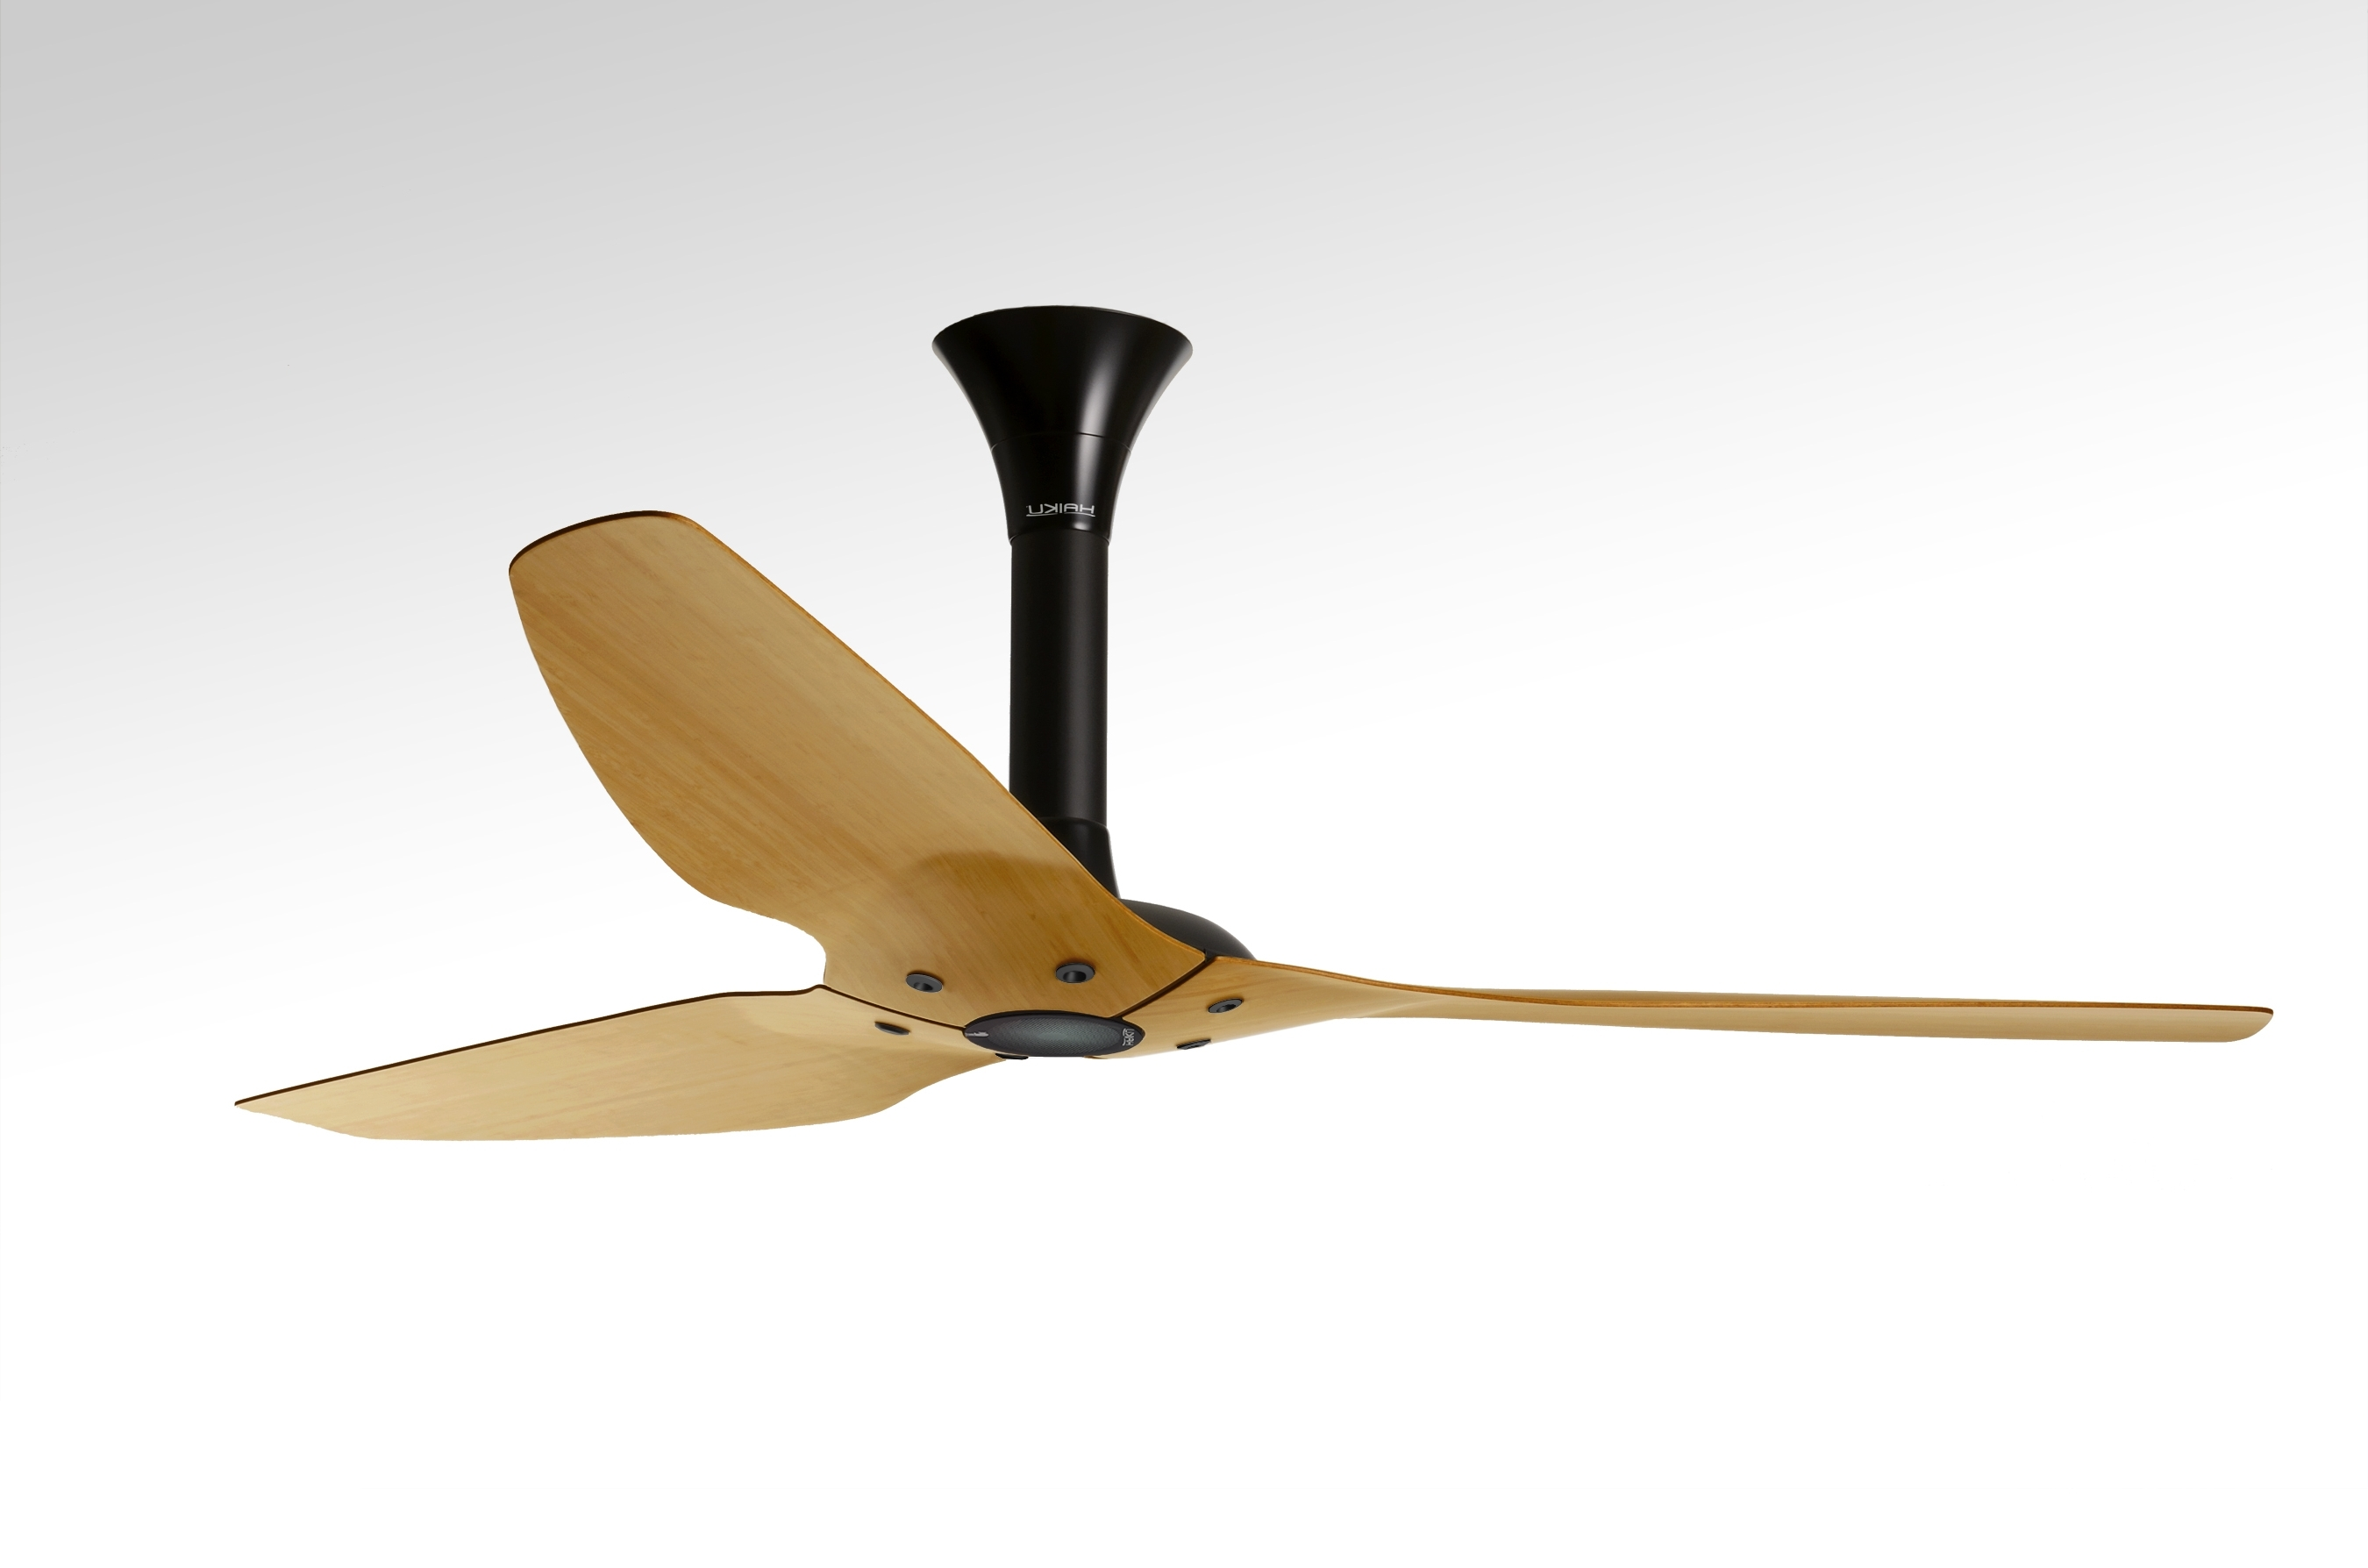 Bamboo Outdoor Ceiling Fans Intended For Recent Bamboo Ceiling Fans With Lights With Regard To House (View 11 of 20)